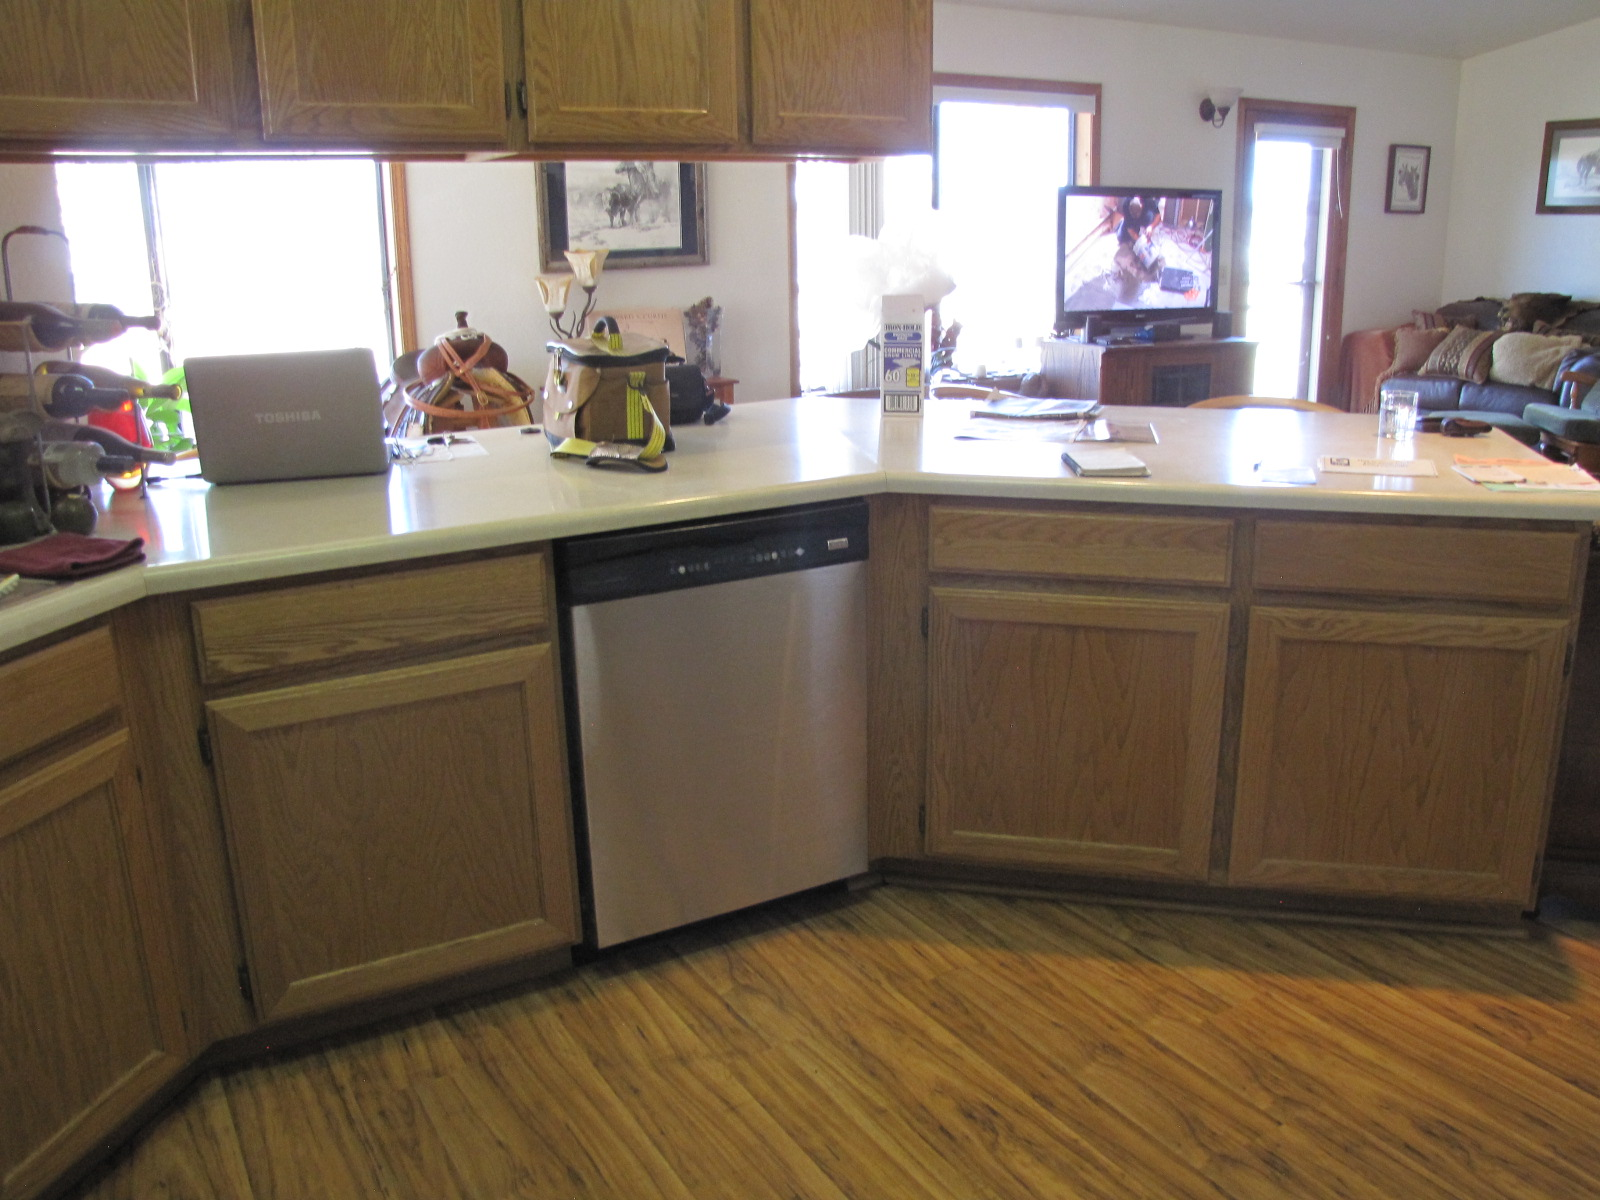 Interior shot of a residential kitchen ready to be remodeled